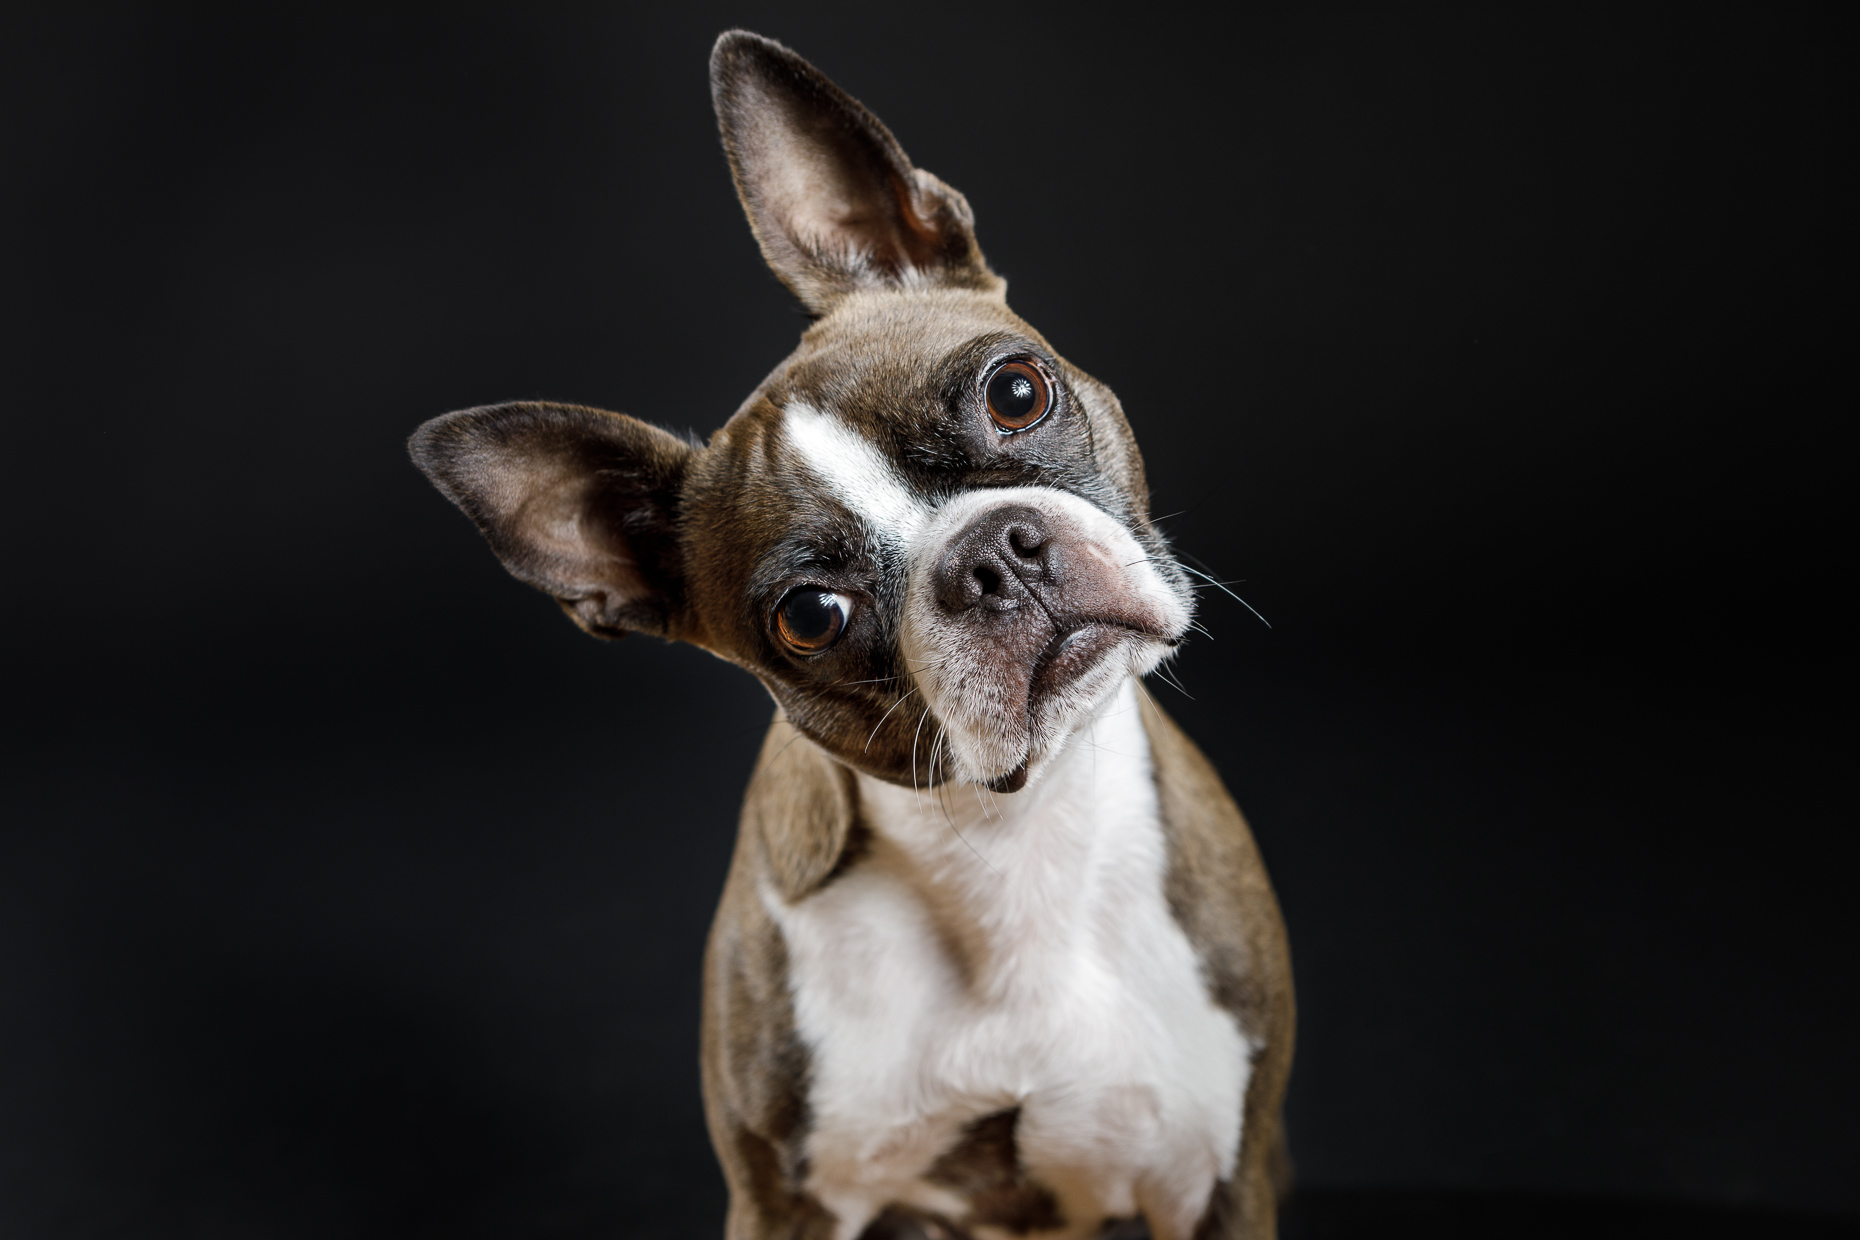 Fawn Boston Terrier  | Washington DC Lifestyle Dog Photographer | Studio Portrait